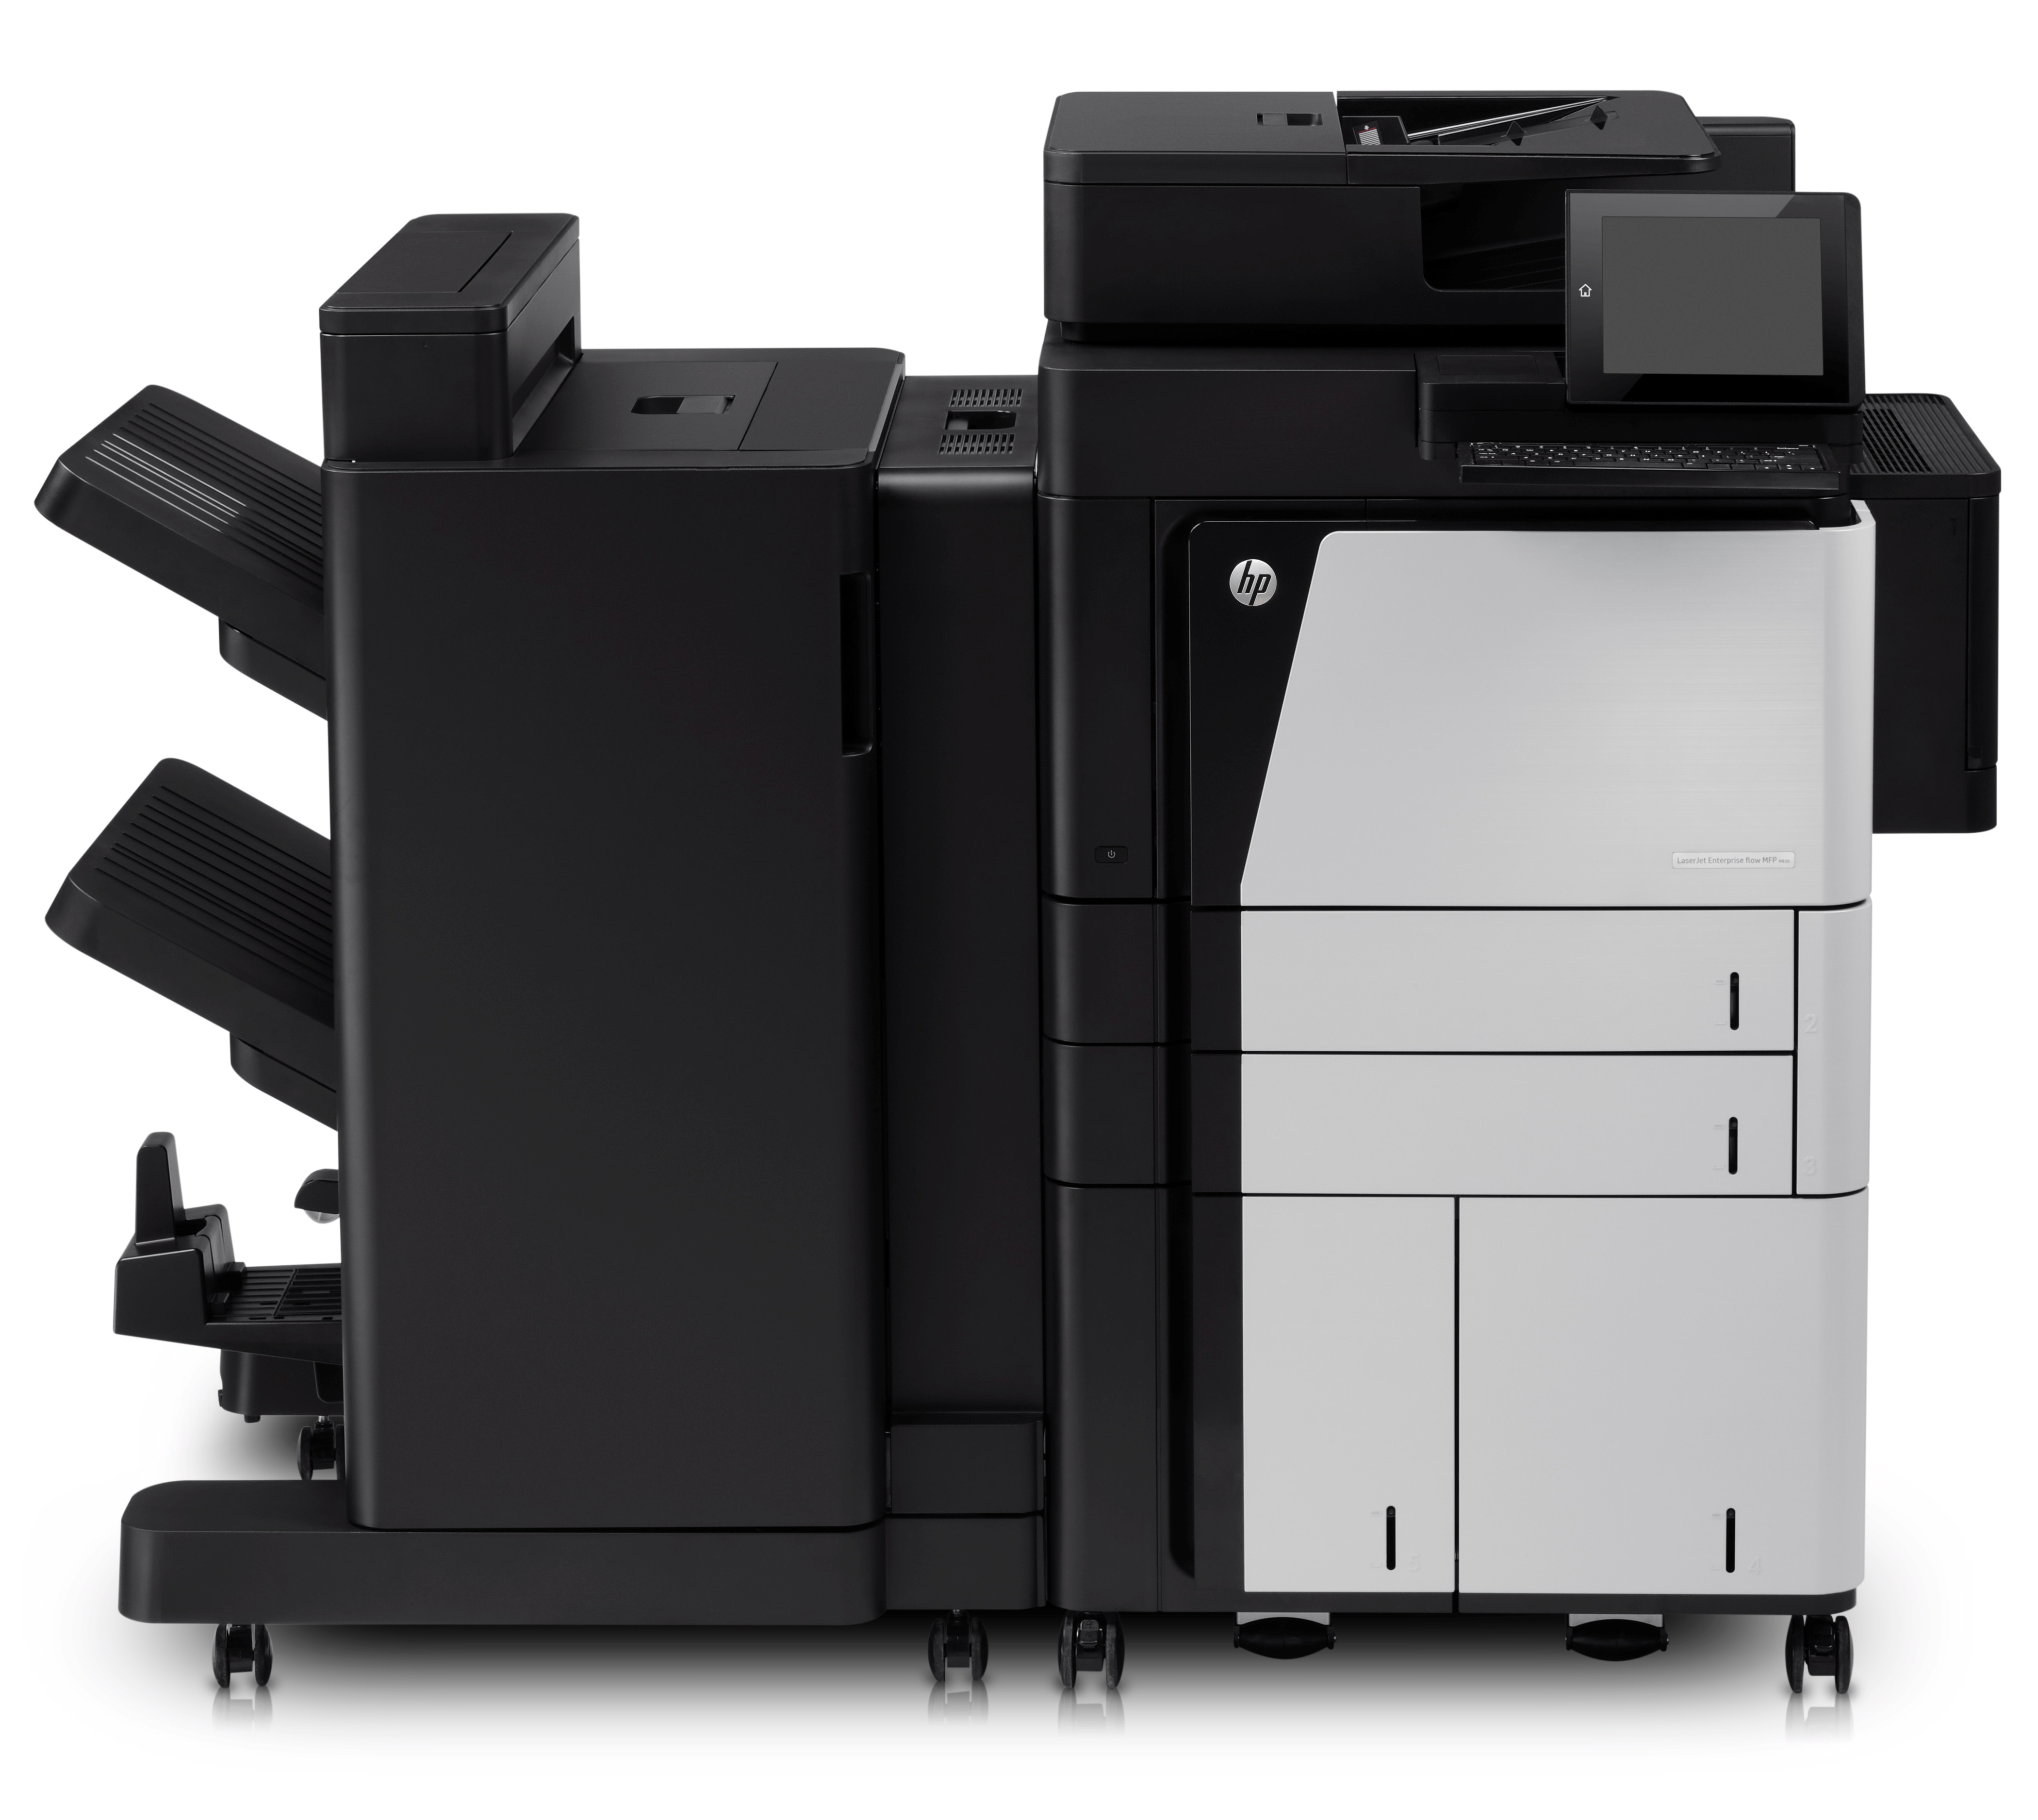 HP Laserjet Enterprise M830z MFP/ Mono/ A3/ 50ppm/ Network/ Duplex/ Fax/ 120GB HDD CF367A